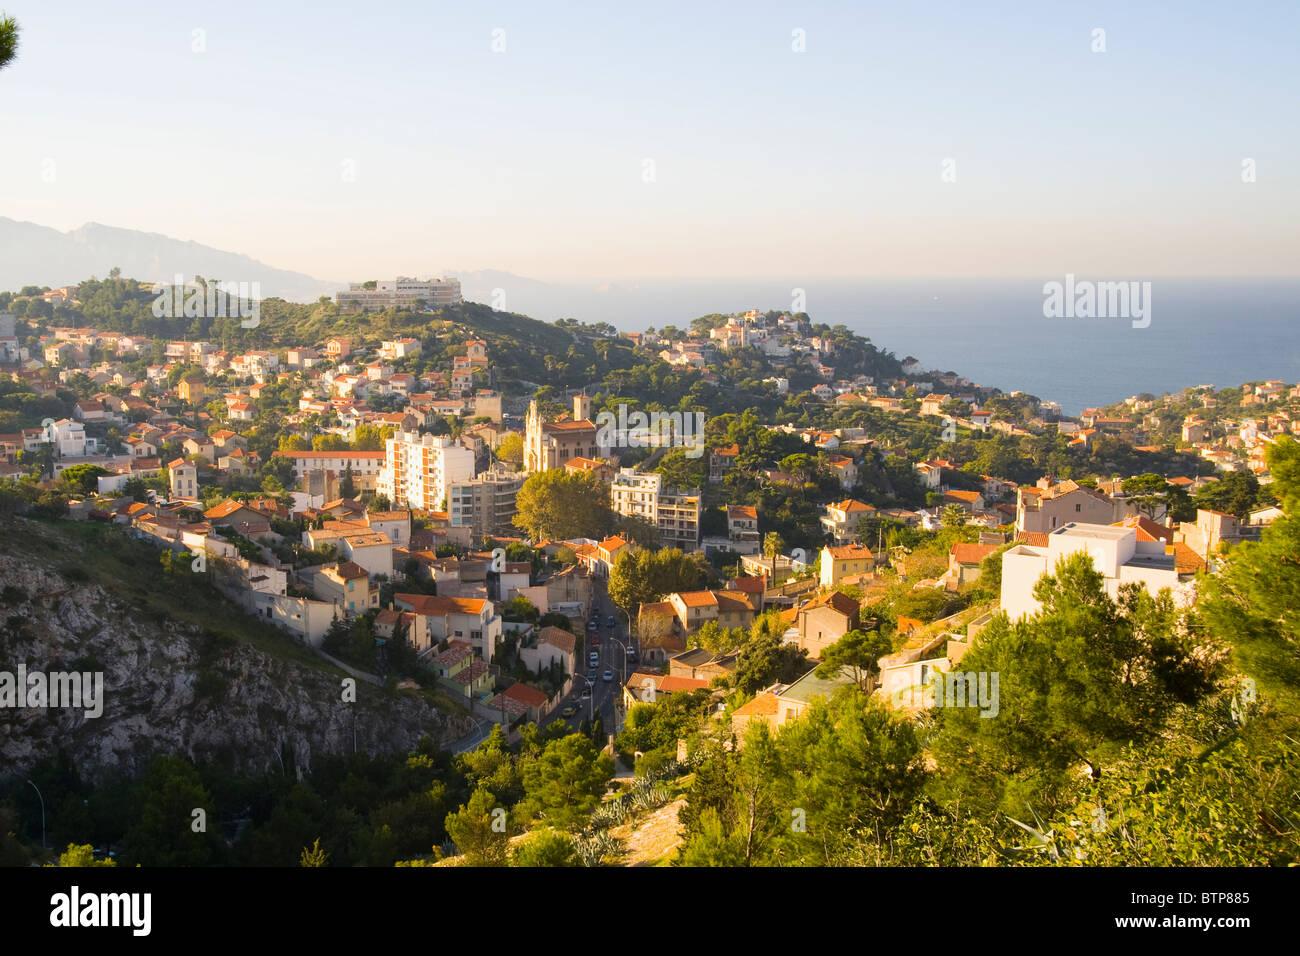 The 7th Arrondissement of Marseille, Marseille, France - Stock Image